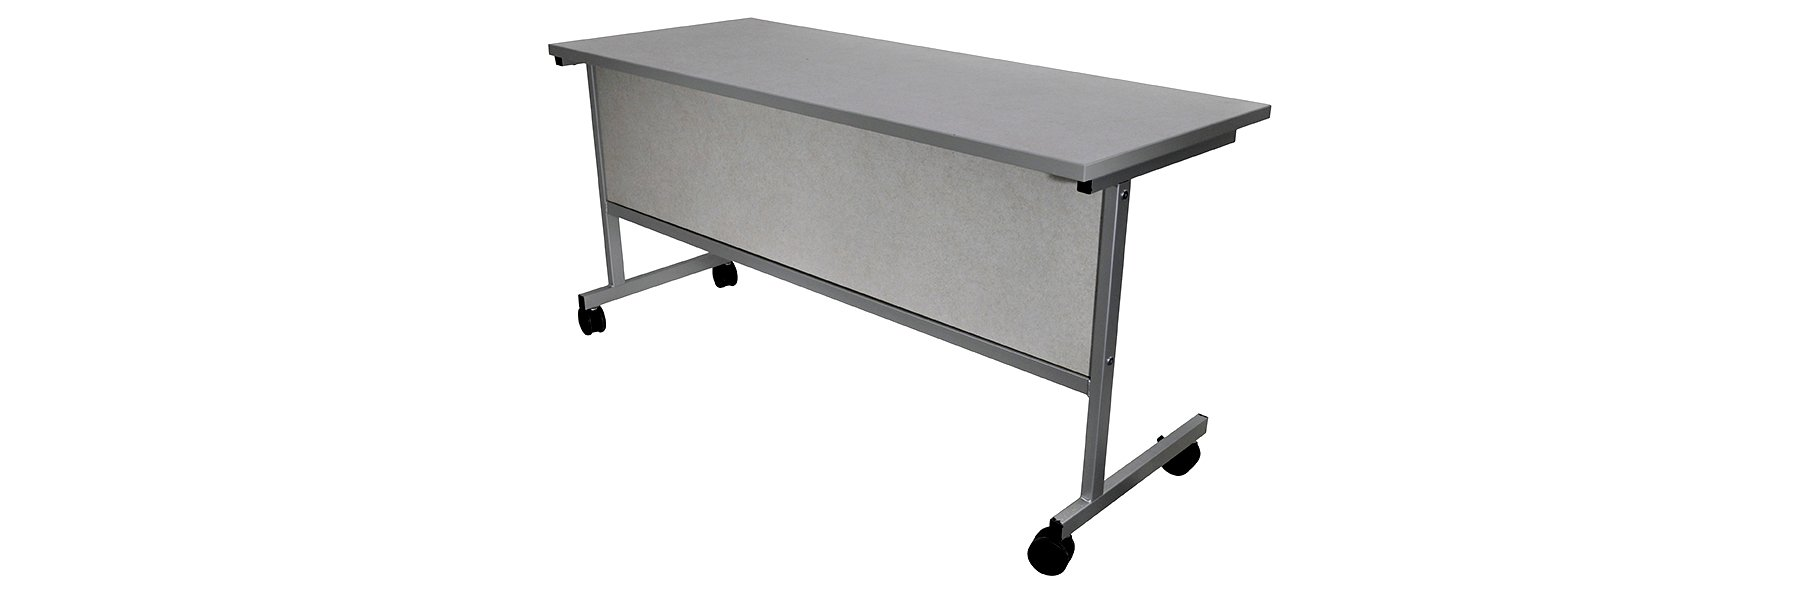 Corilam 613 Mobile Steel Base Desk Front.jpg